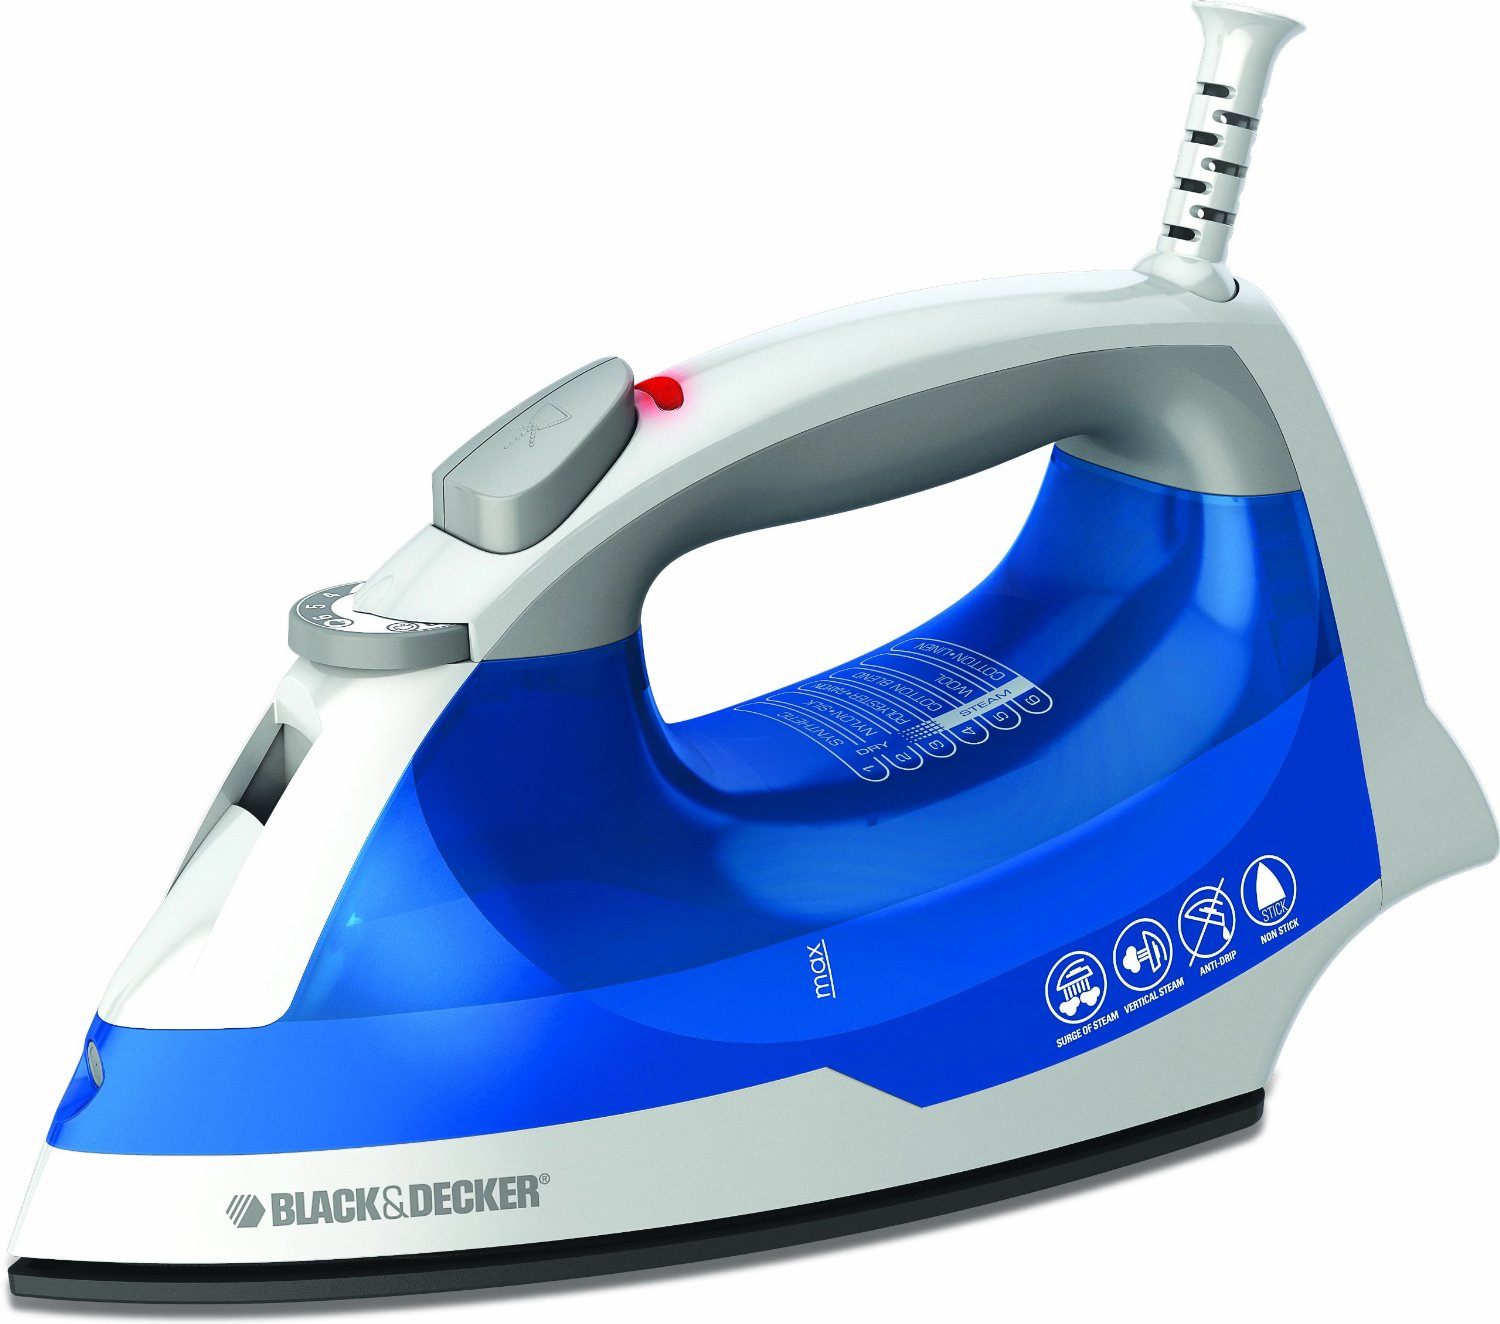 best steam iron black amp decker ir03v review cheap but junk 28433